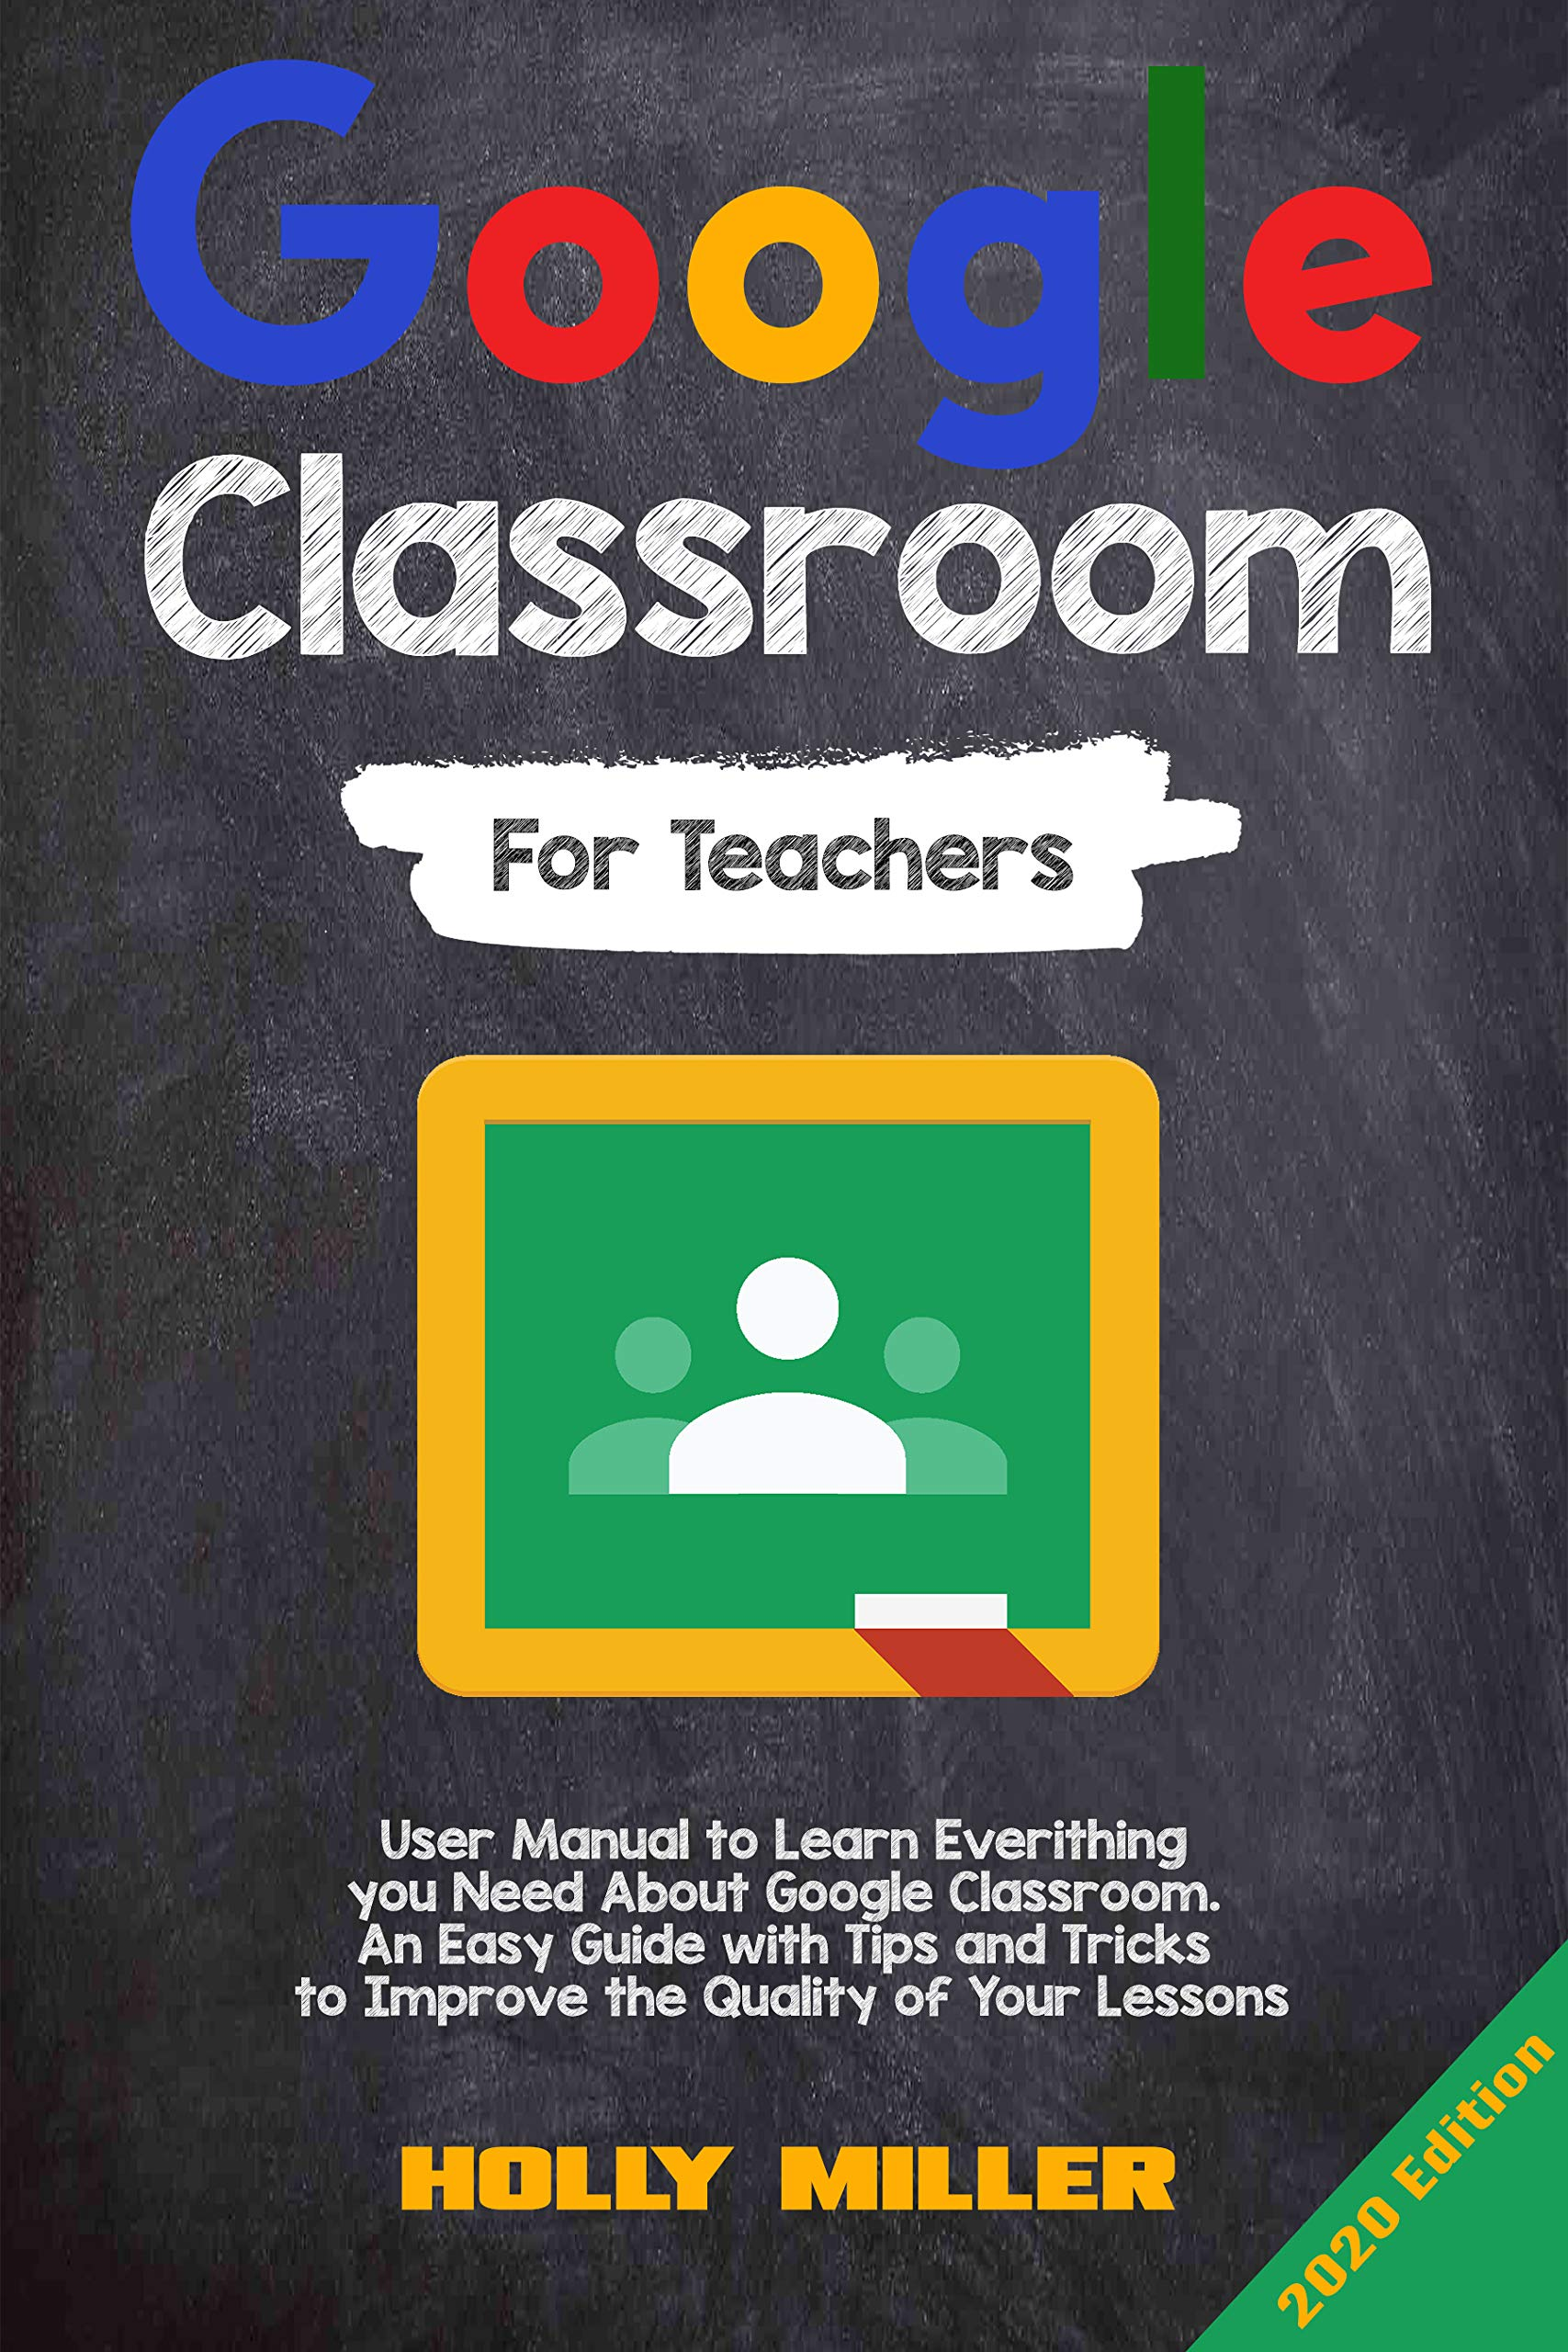 Google Classroom: 2020 Edition. For Teachers. User Manual to Learn Everything you Need About Google Classroom. An Easy Guide with Tips and Tricks to Improve the Quality of Your Lessons